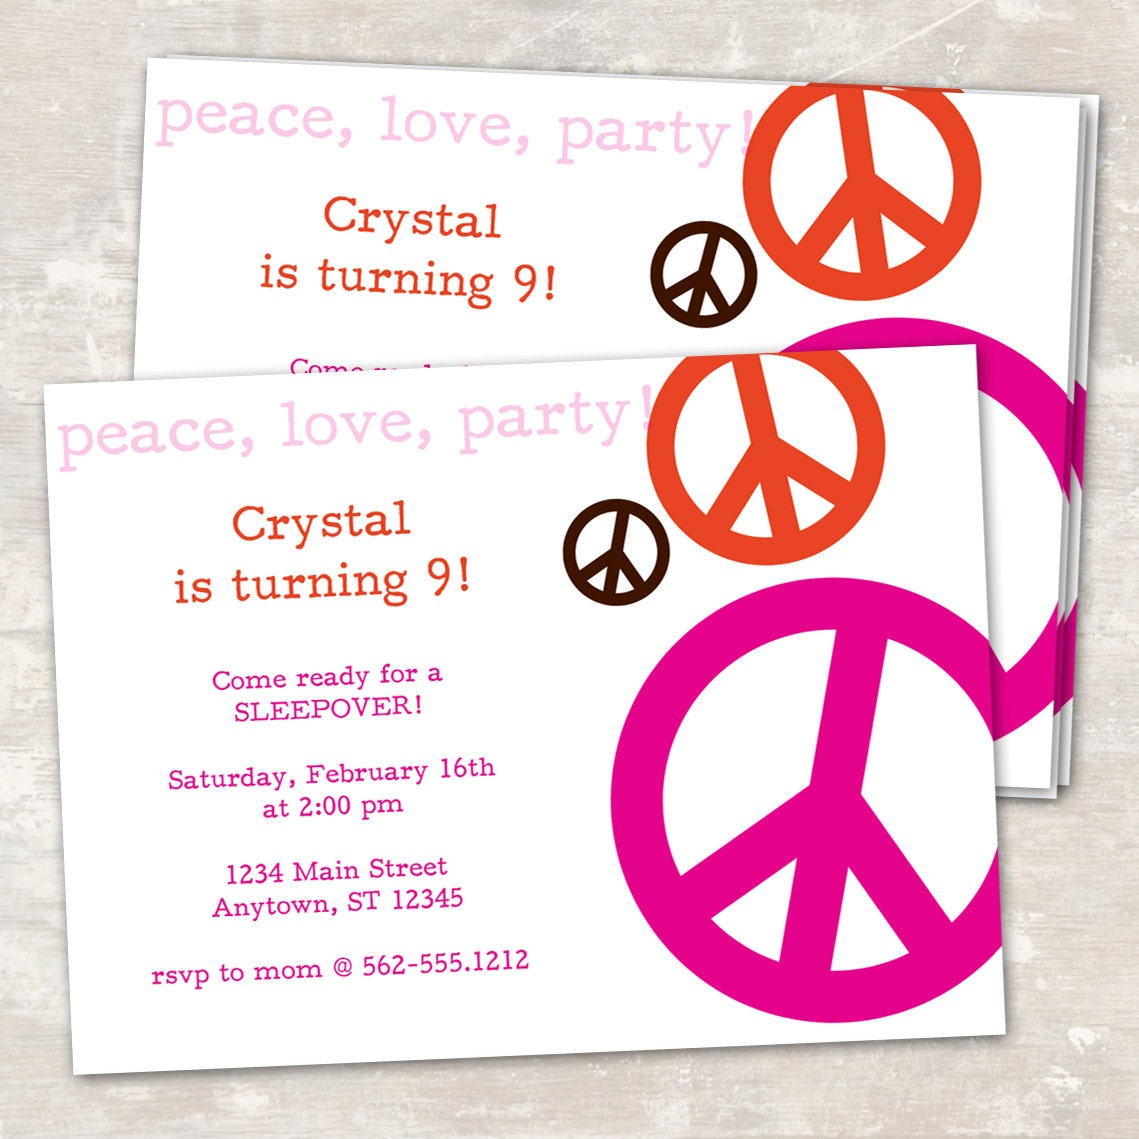 Card Stock For Invitations with nice invitation layout